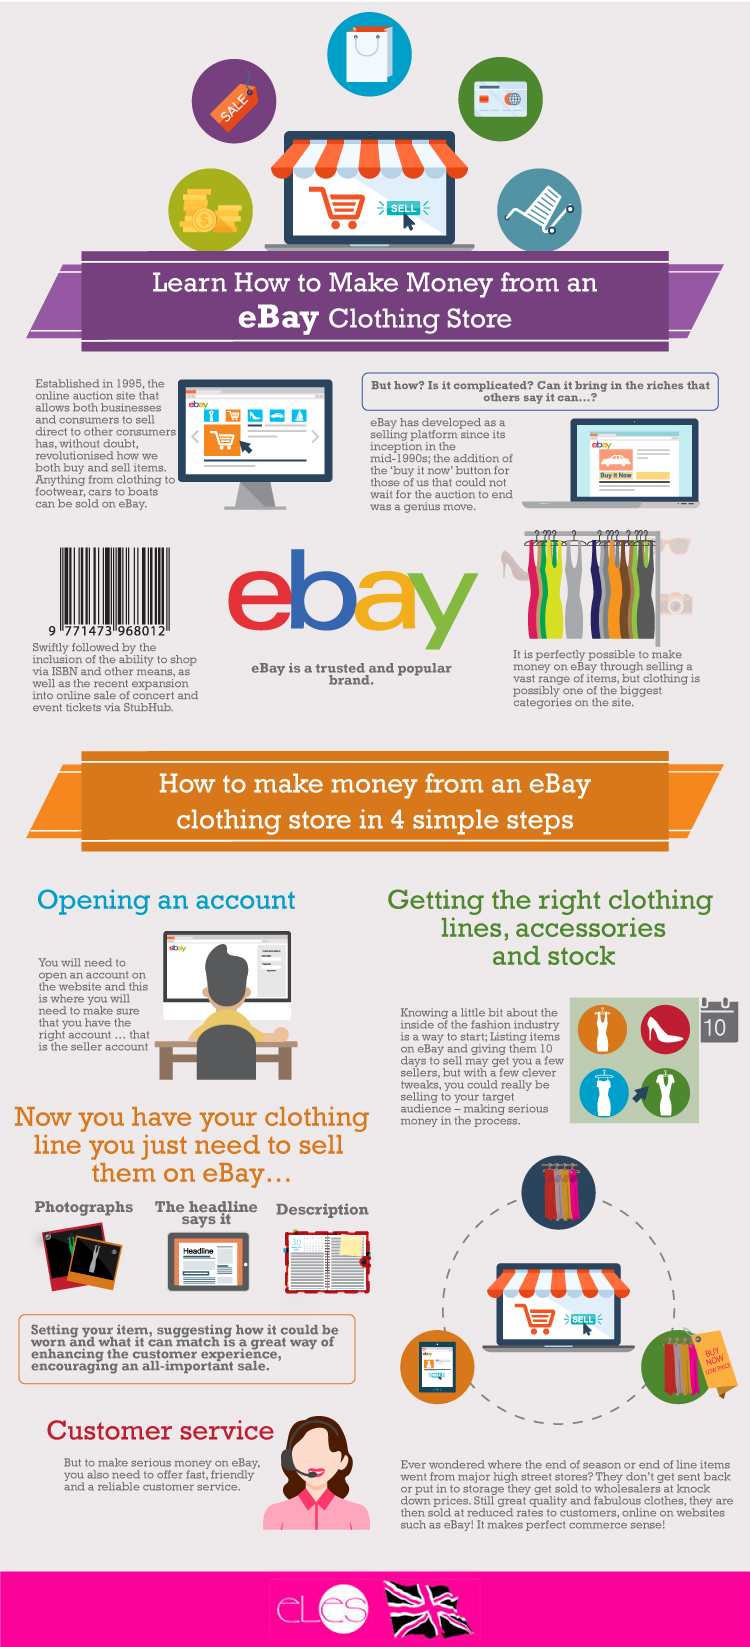 Why should I use mannequins in my eBay store? | The Competitive